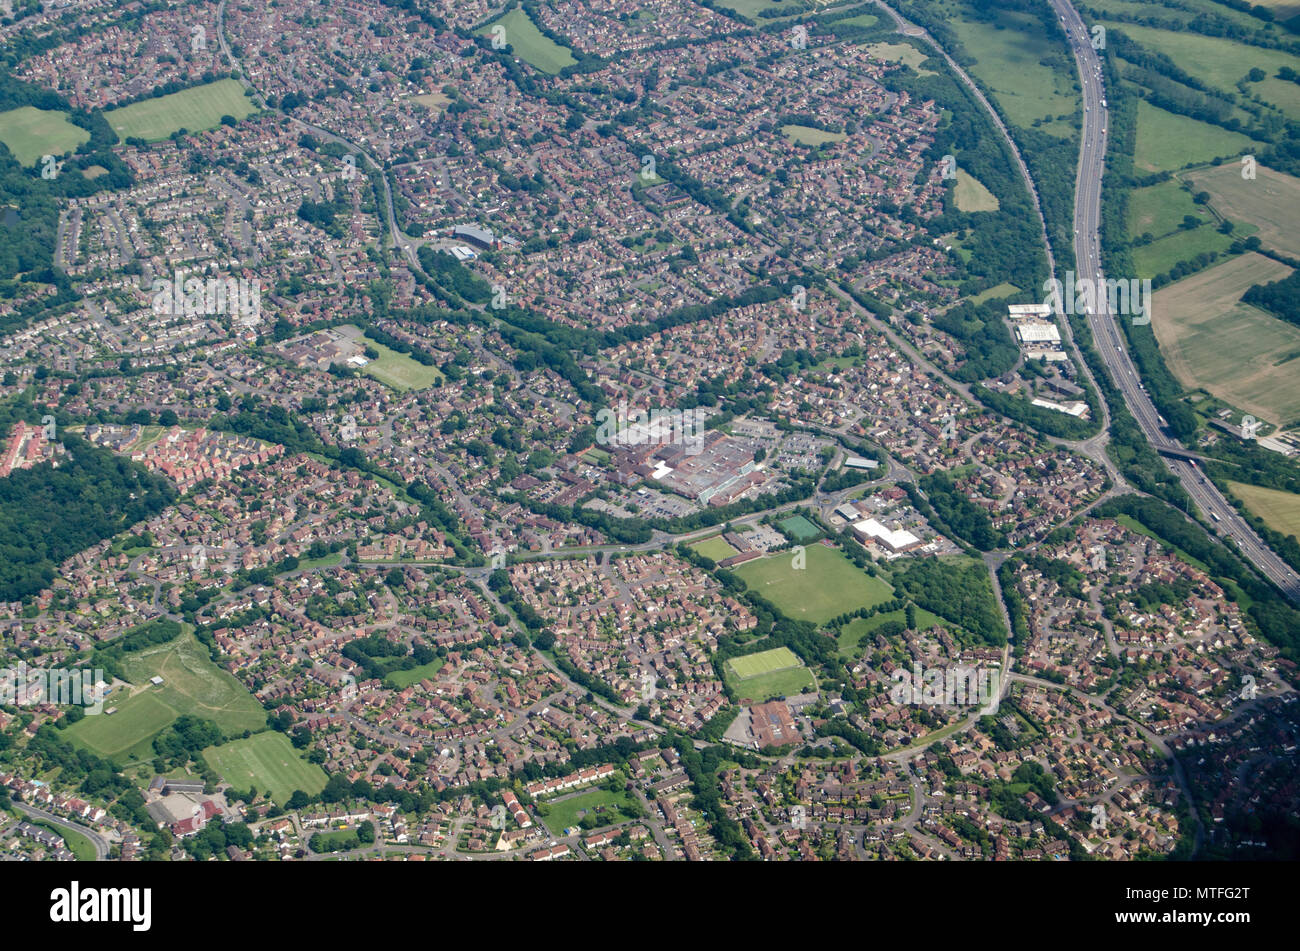 Aerial view of the housing estates of Lower Earley in Reading, Berkshire. Mostly built in recent decades, the housing provides homes for workers both  - Stock Image